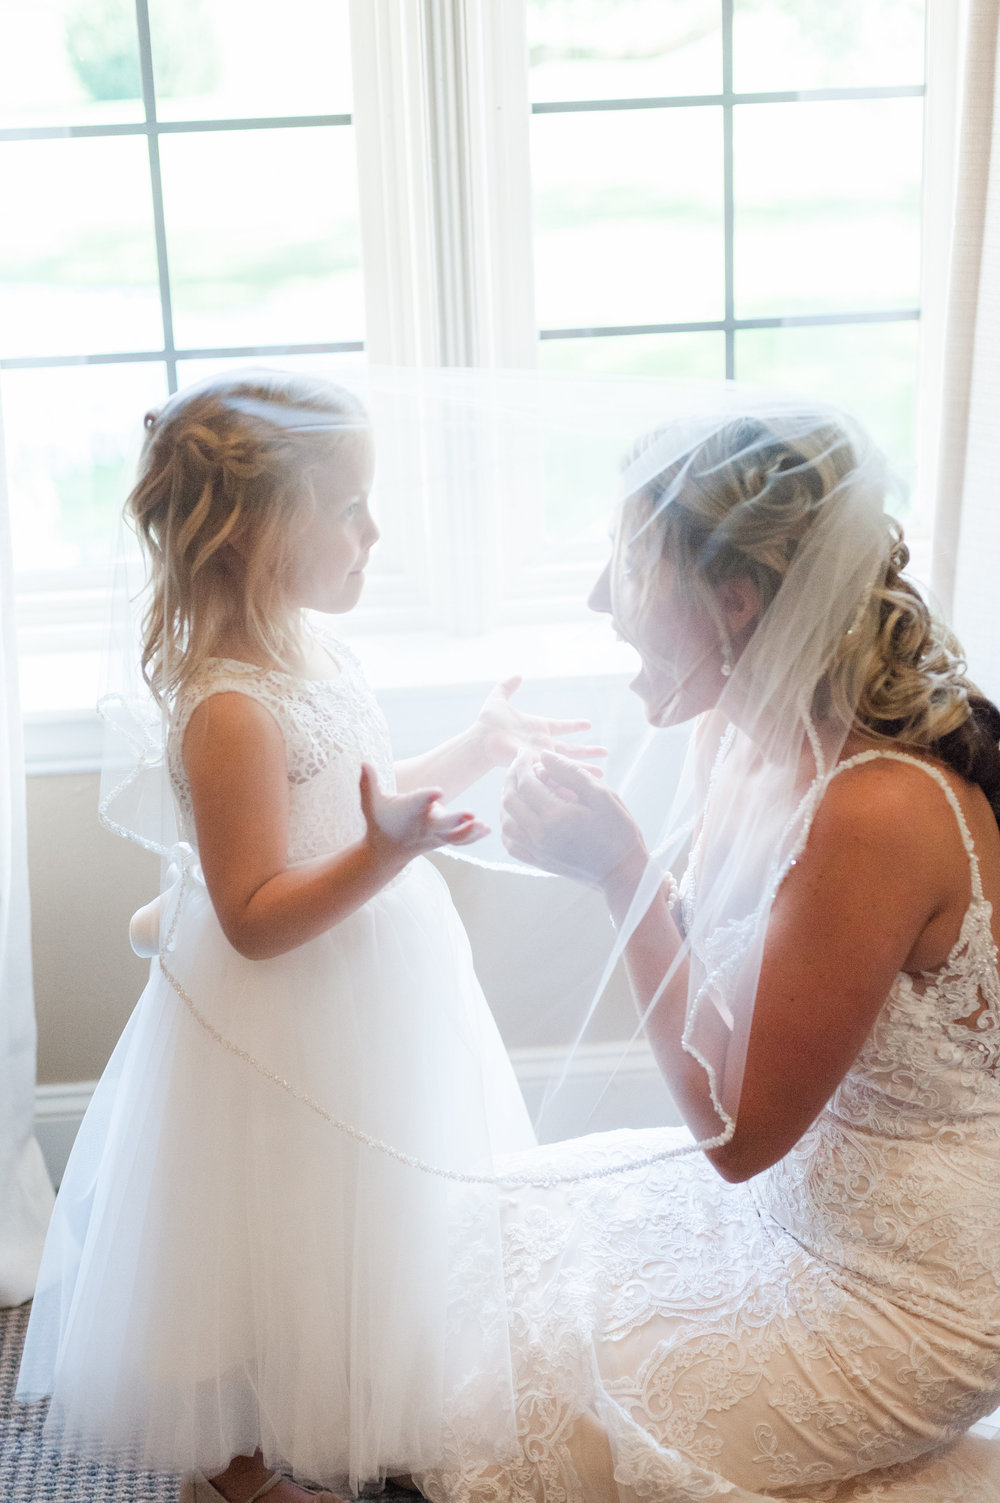 Cute Bride + Flower Girl Photos